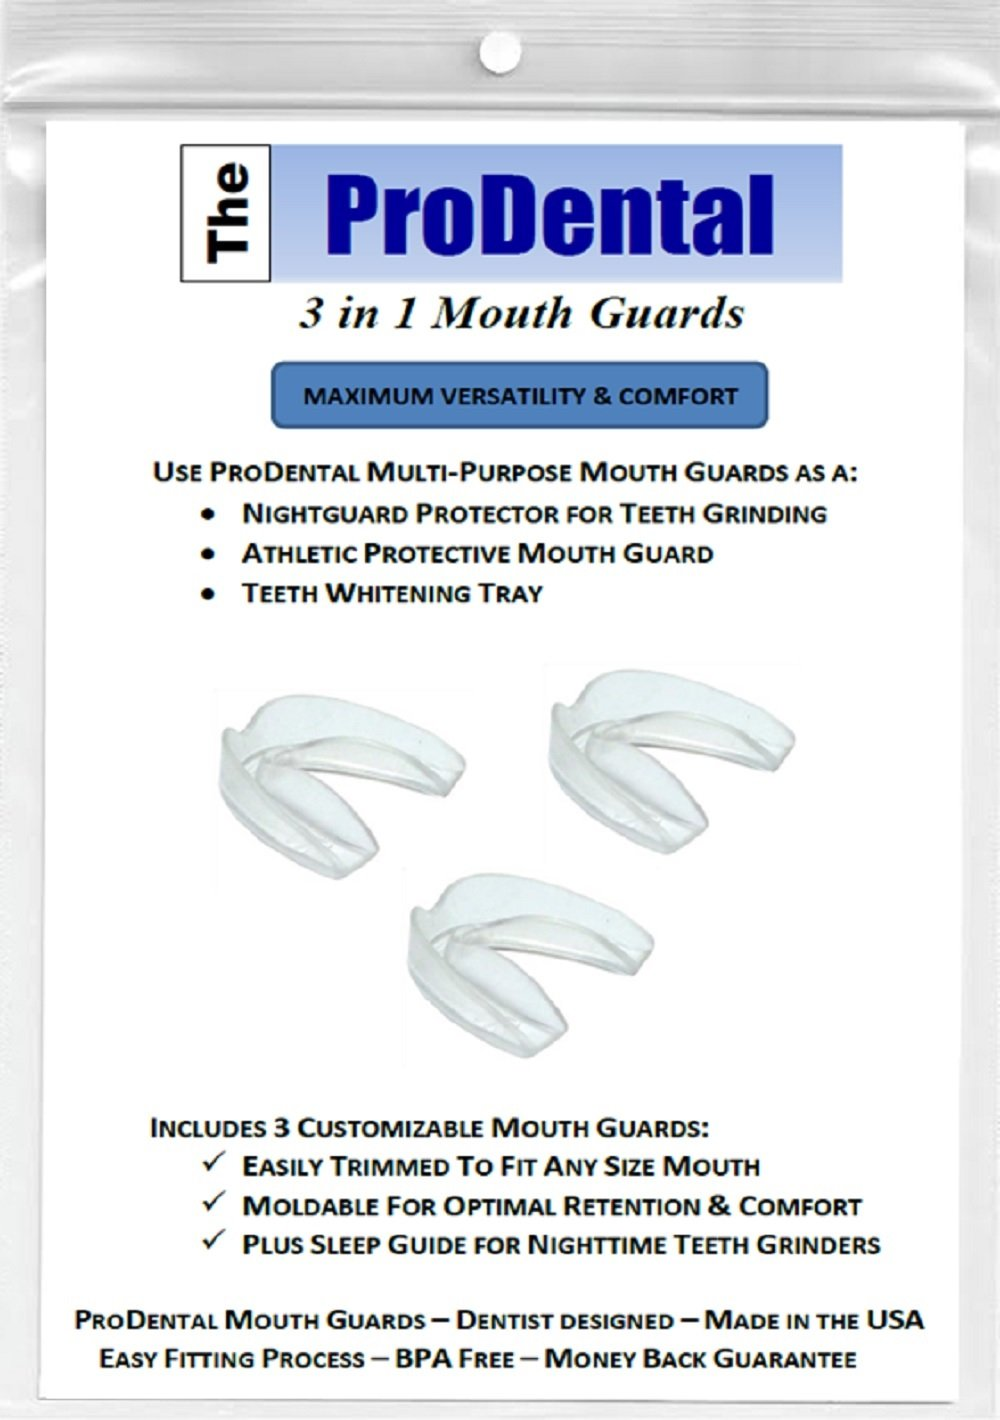 ProDental Best Mouth Guard Review by www.snoremagazine.com